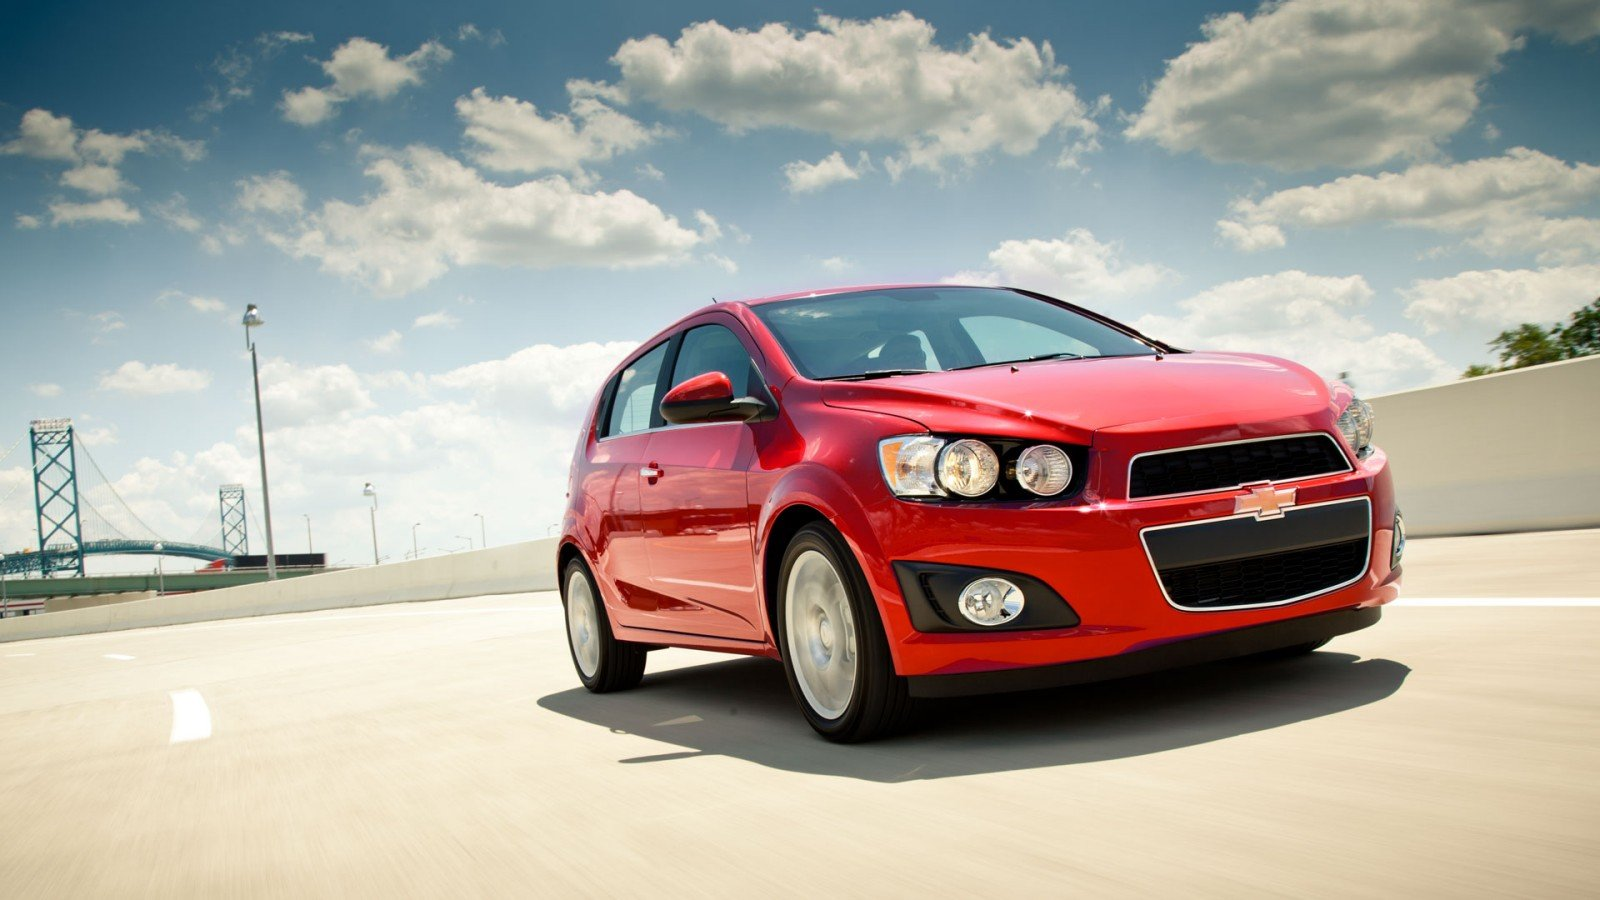 New Chevrolet Sonic For Sale Wexford PA